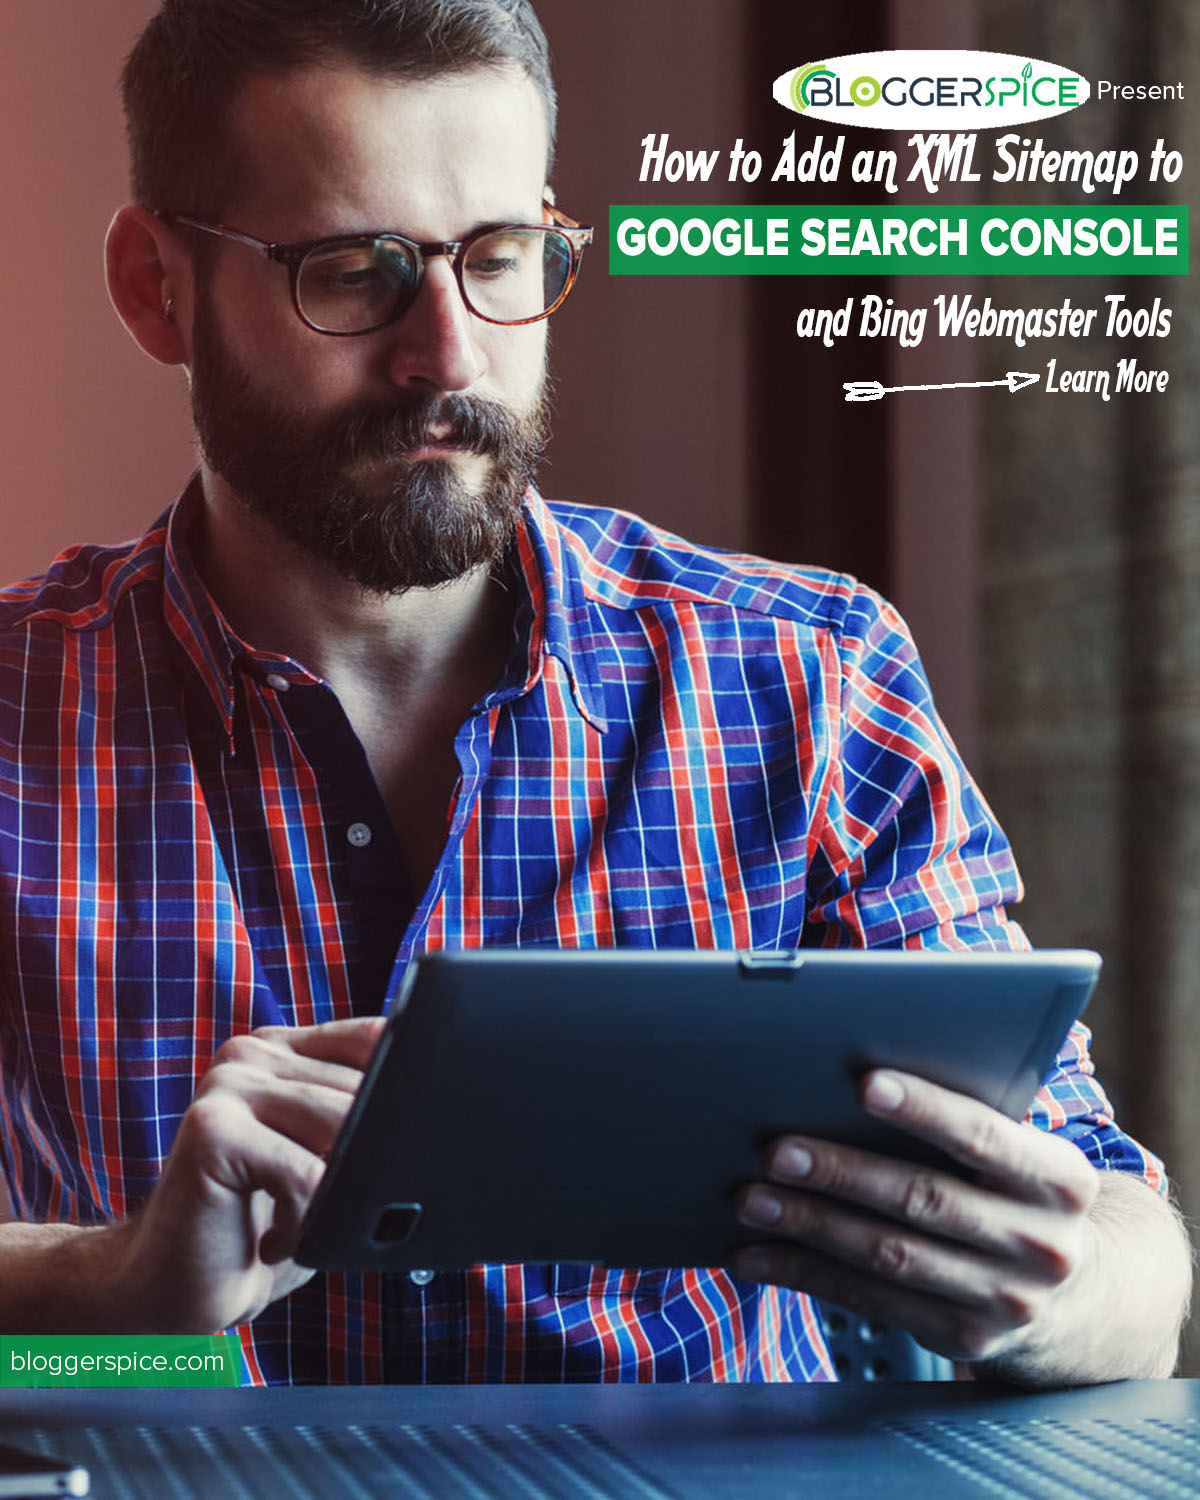 How to Add an XML Sitemap to Google Search Console & Bing Webmaster Tools?